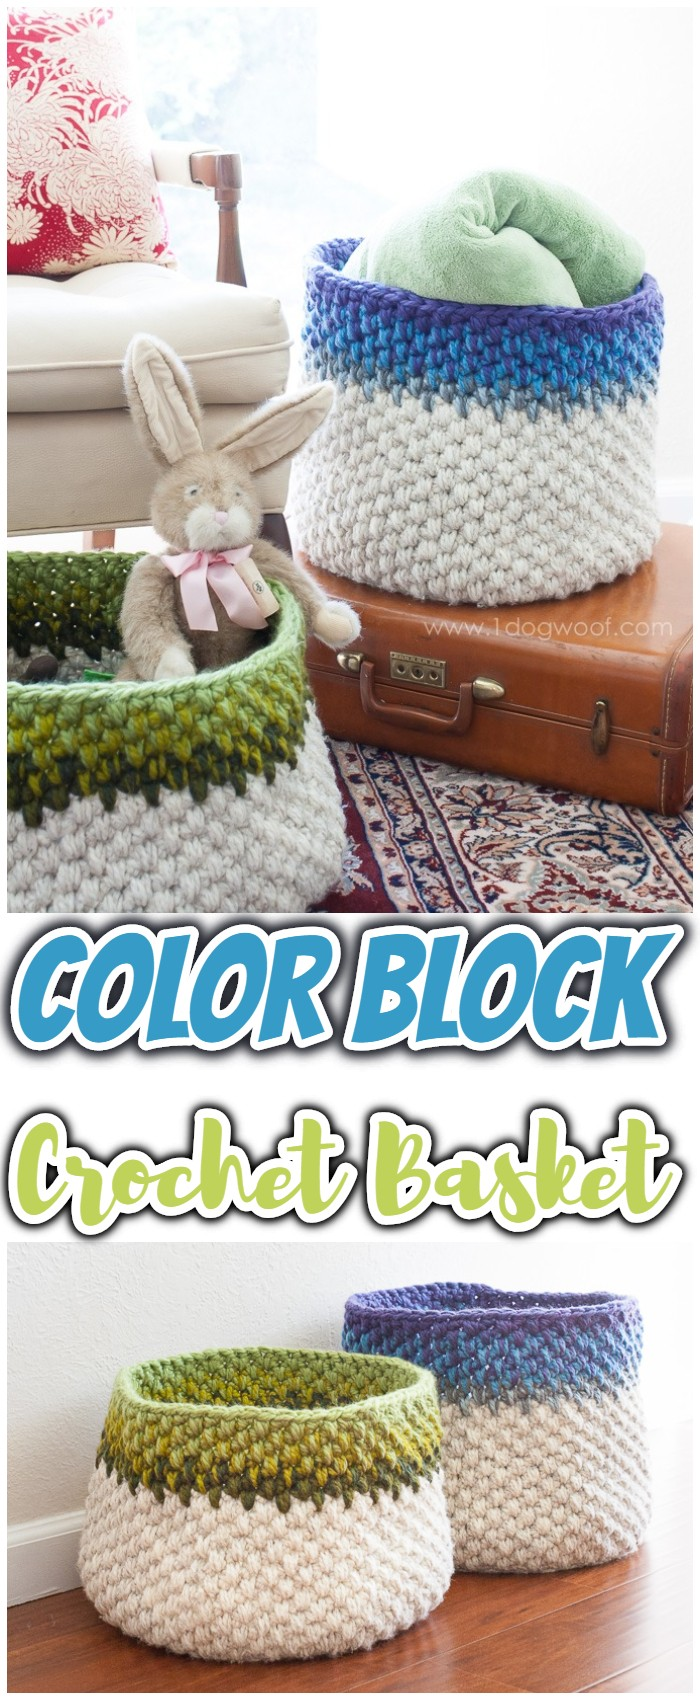 Color Block Crochet Basket